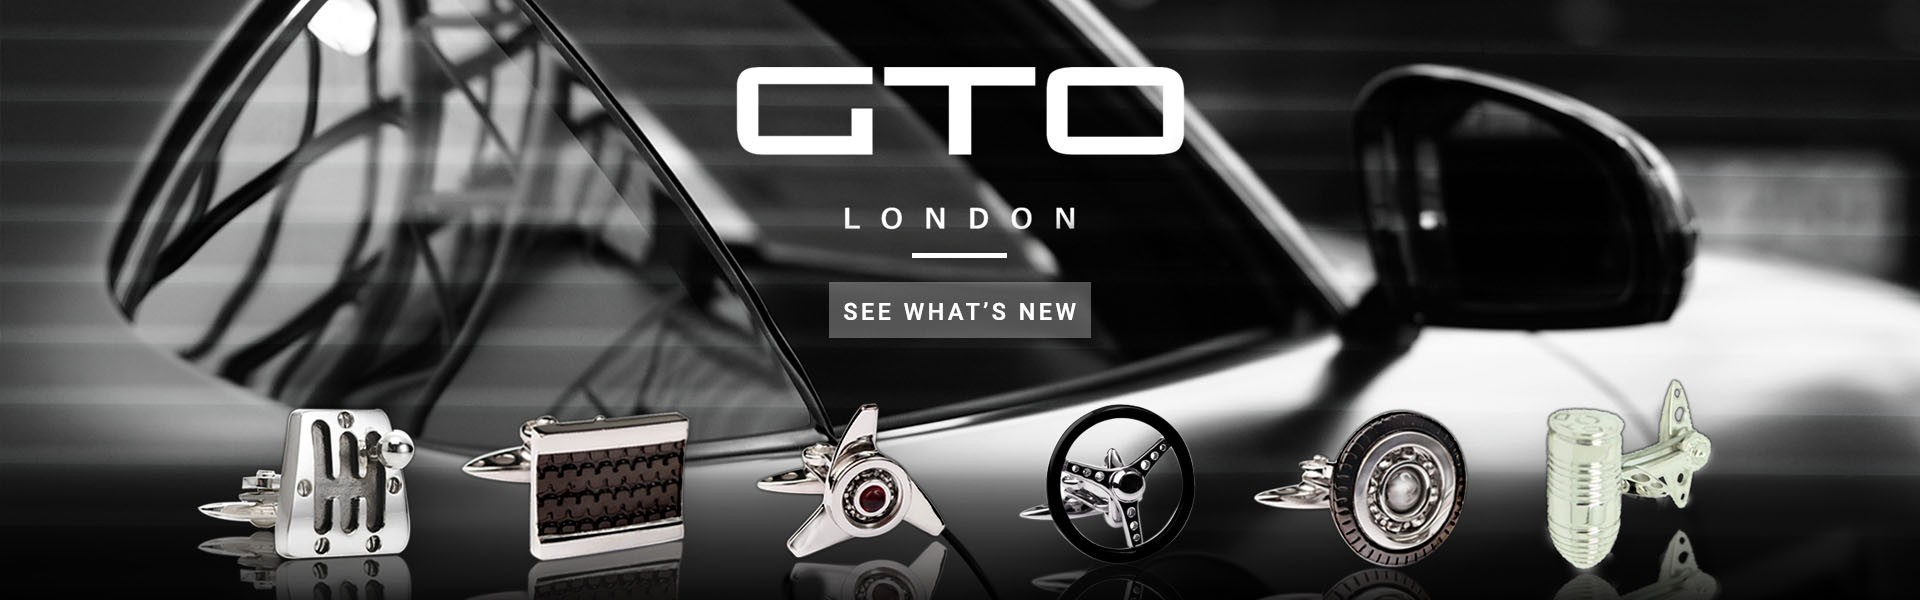 Luxury GTO London Cufflinks